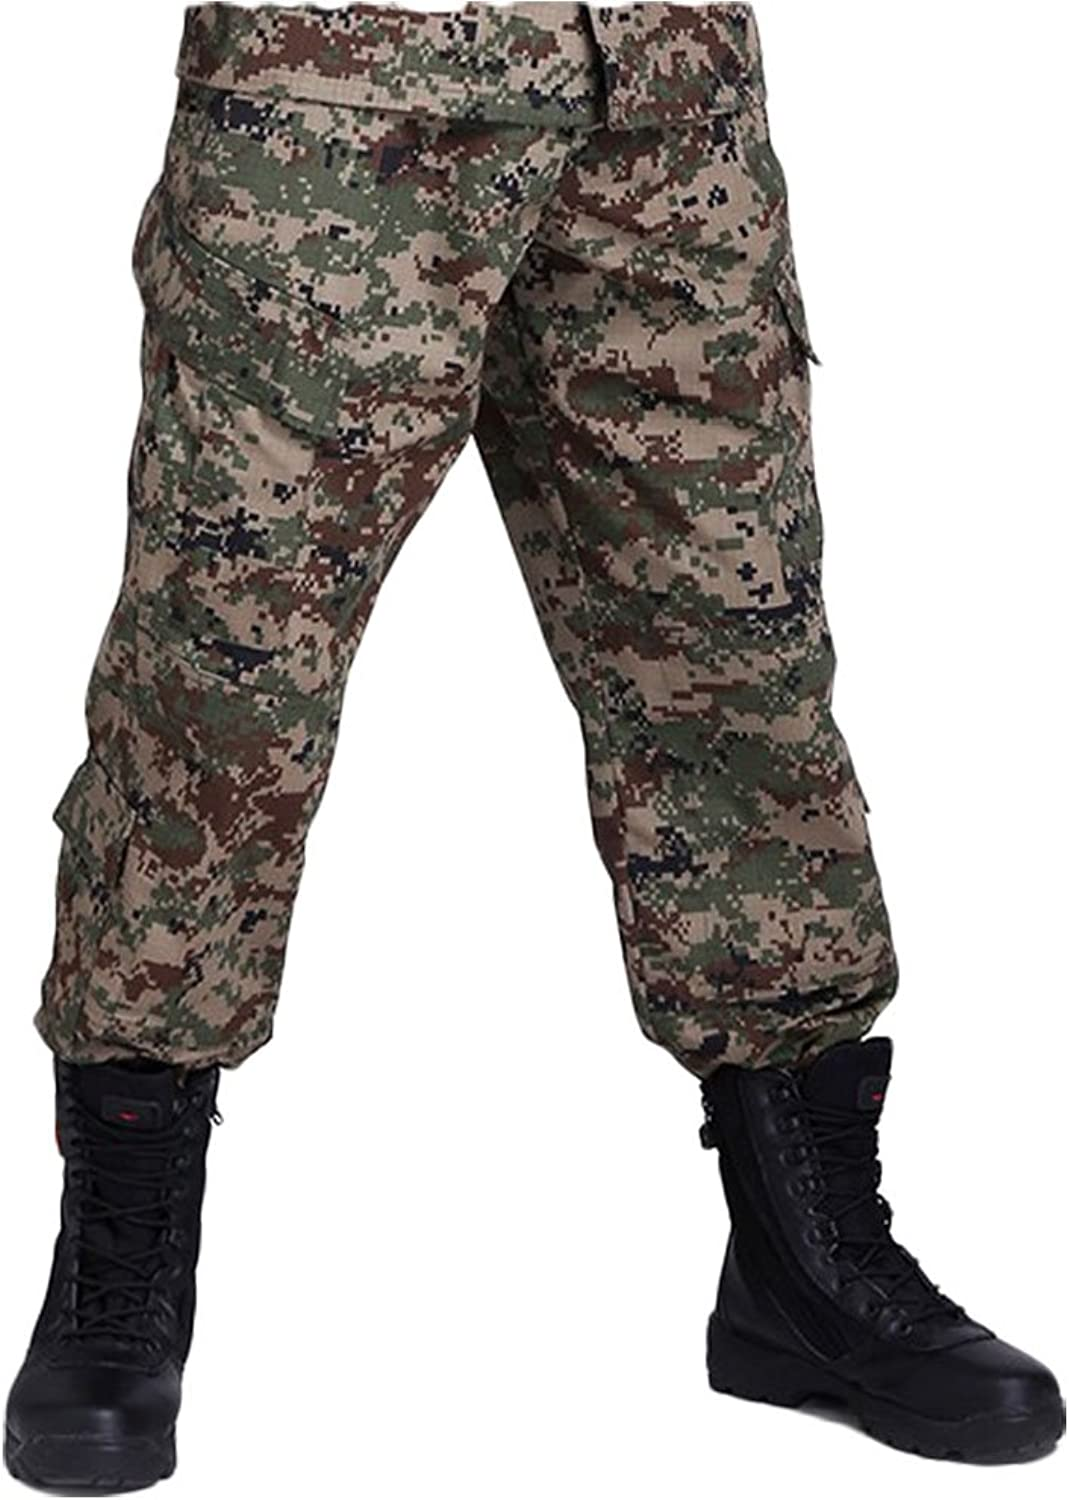 OSdream Outdoor CamoA Tactical Suit Clothing Pants, Battle Strike Uniform Suit Clothing Pants, Camping Hiking Hunting Paintball Camo Suit Clothing Pants